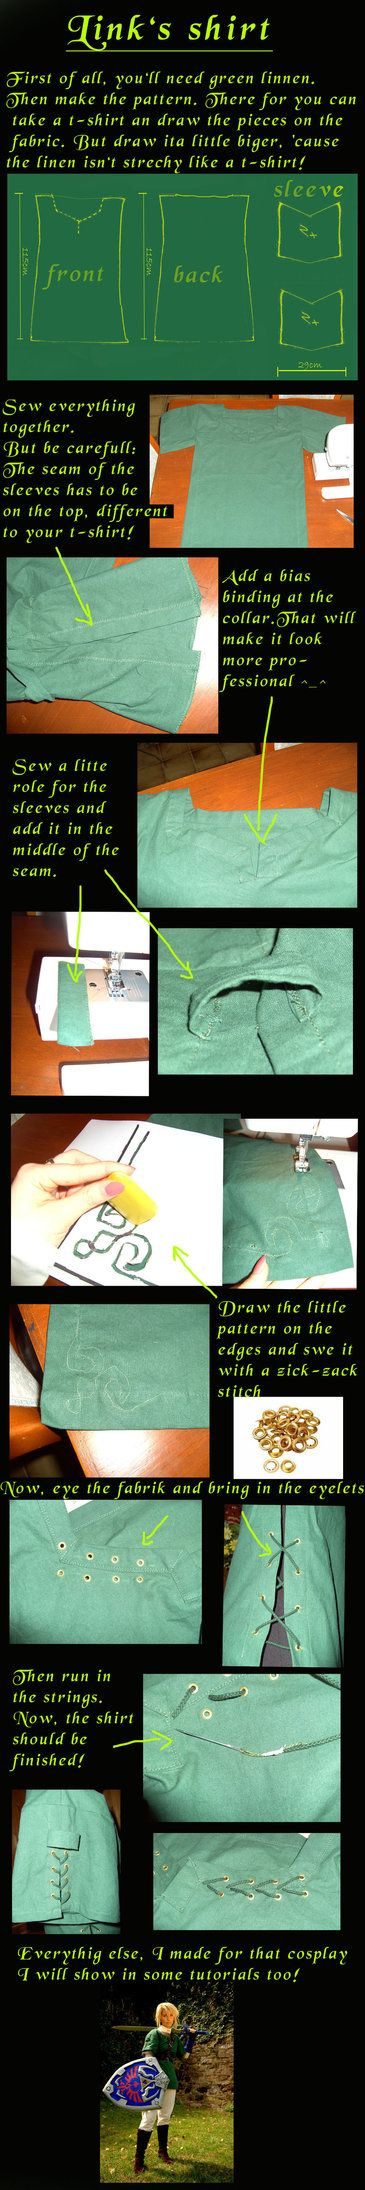 Tutorial, How to: Link's shirt by *Eressea-sama on deviantART